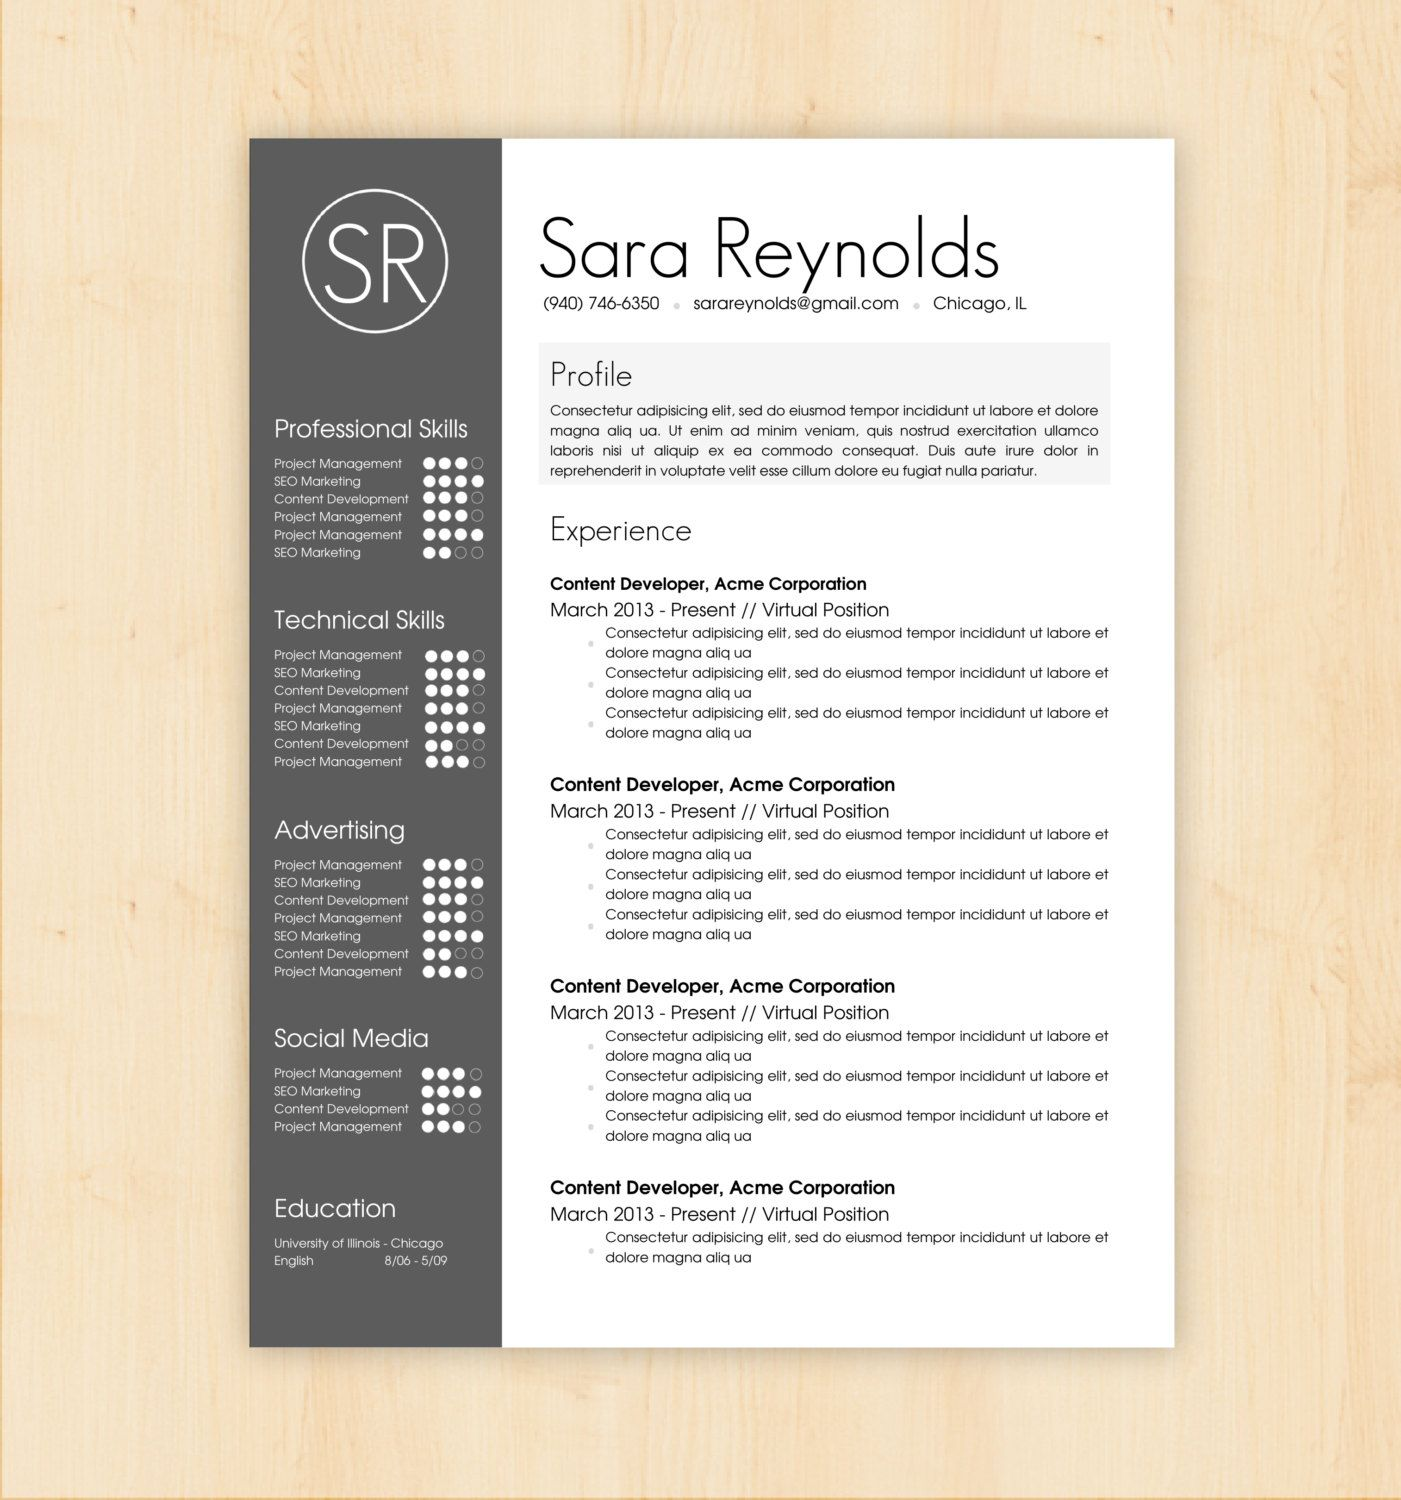 Minimal Resume CV Template | Graphics, Creativity and Design